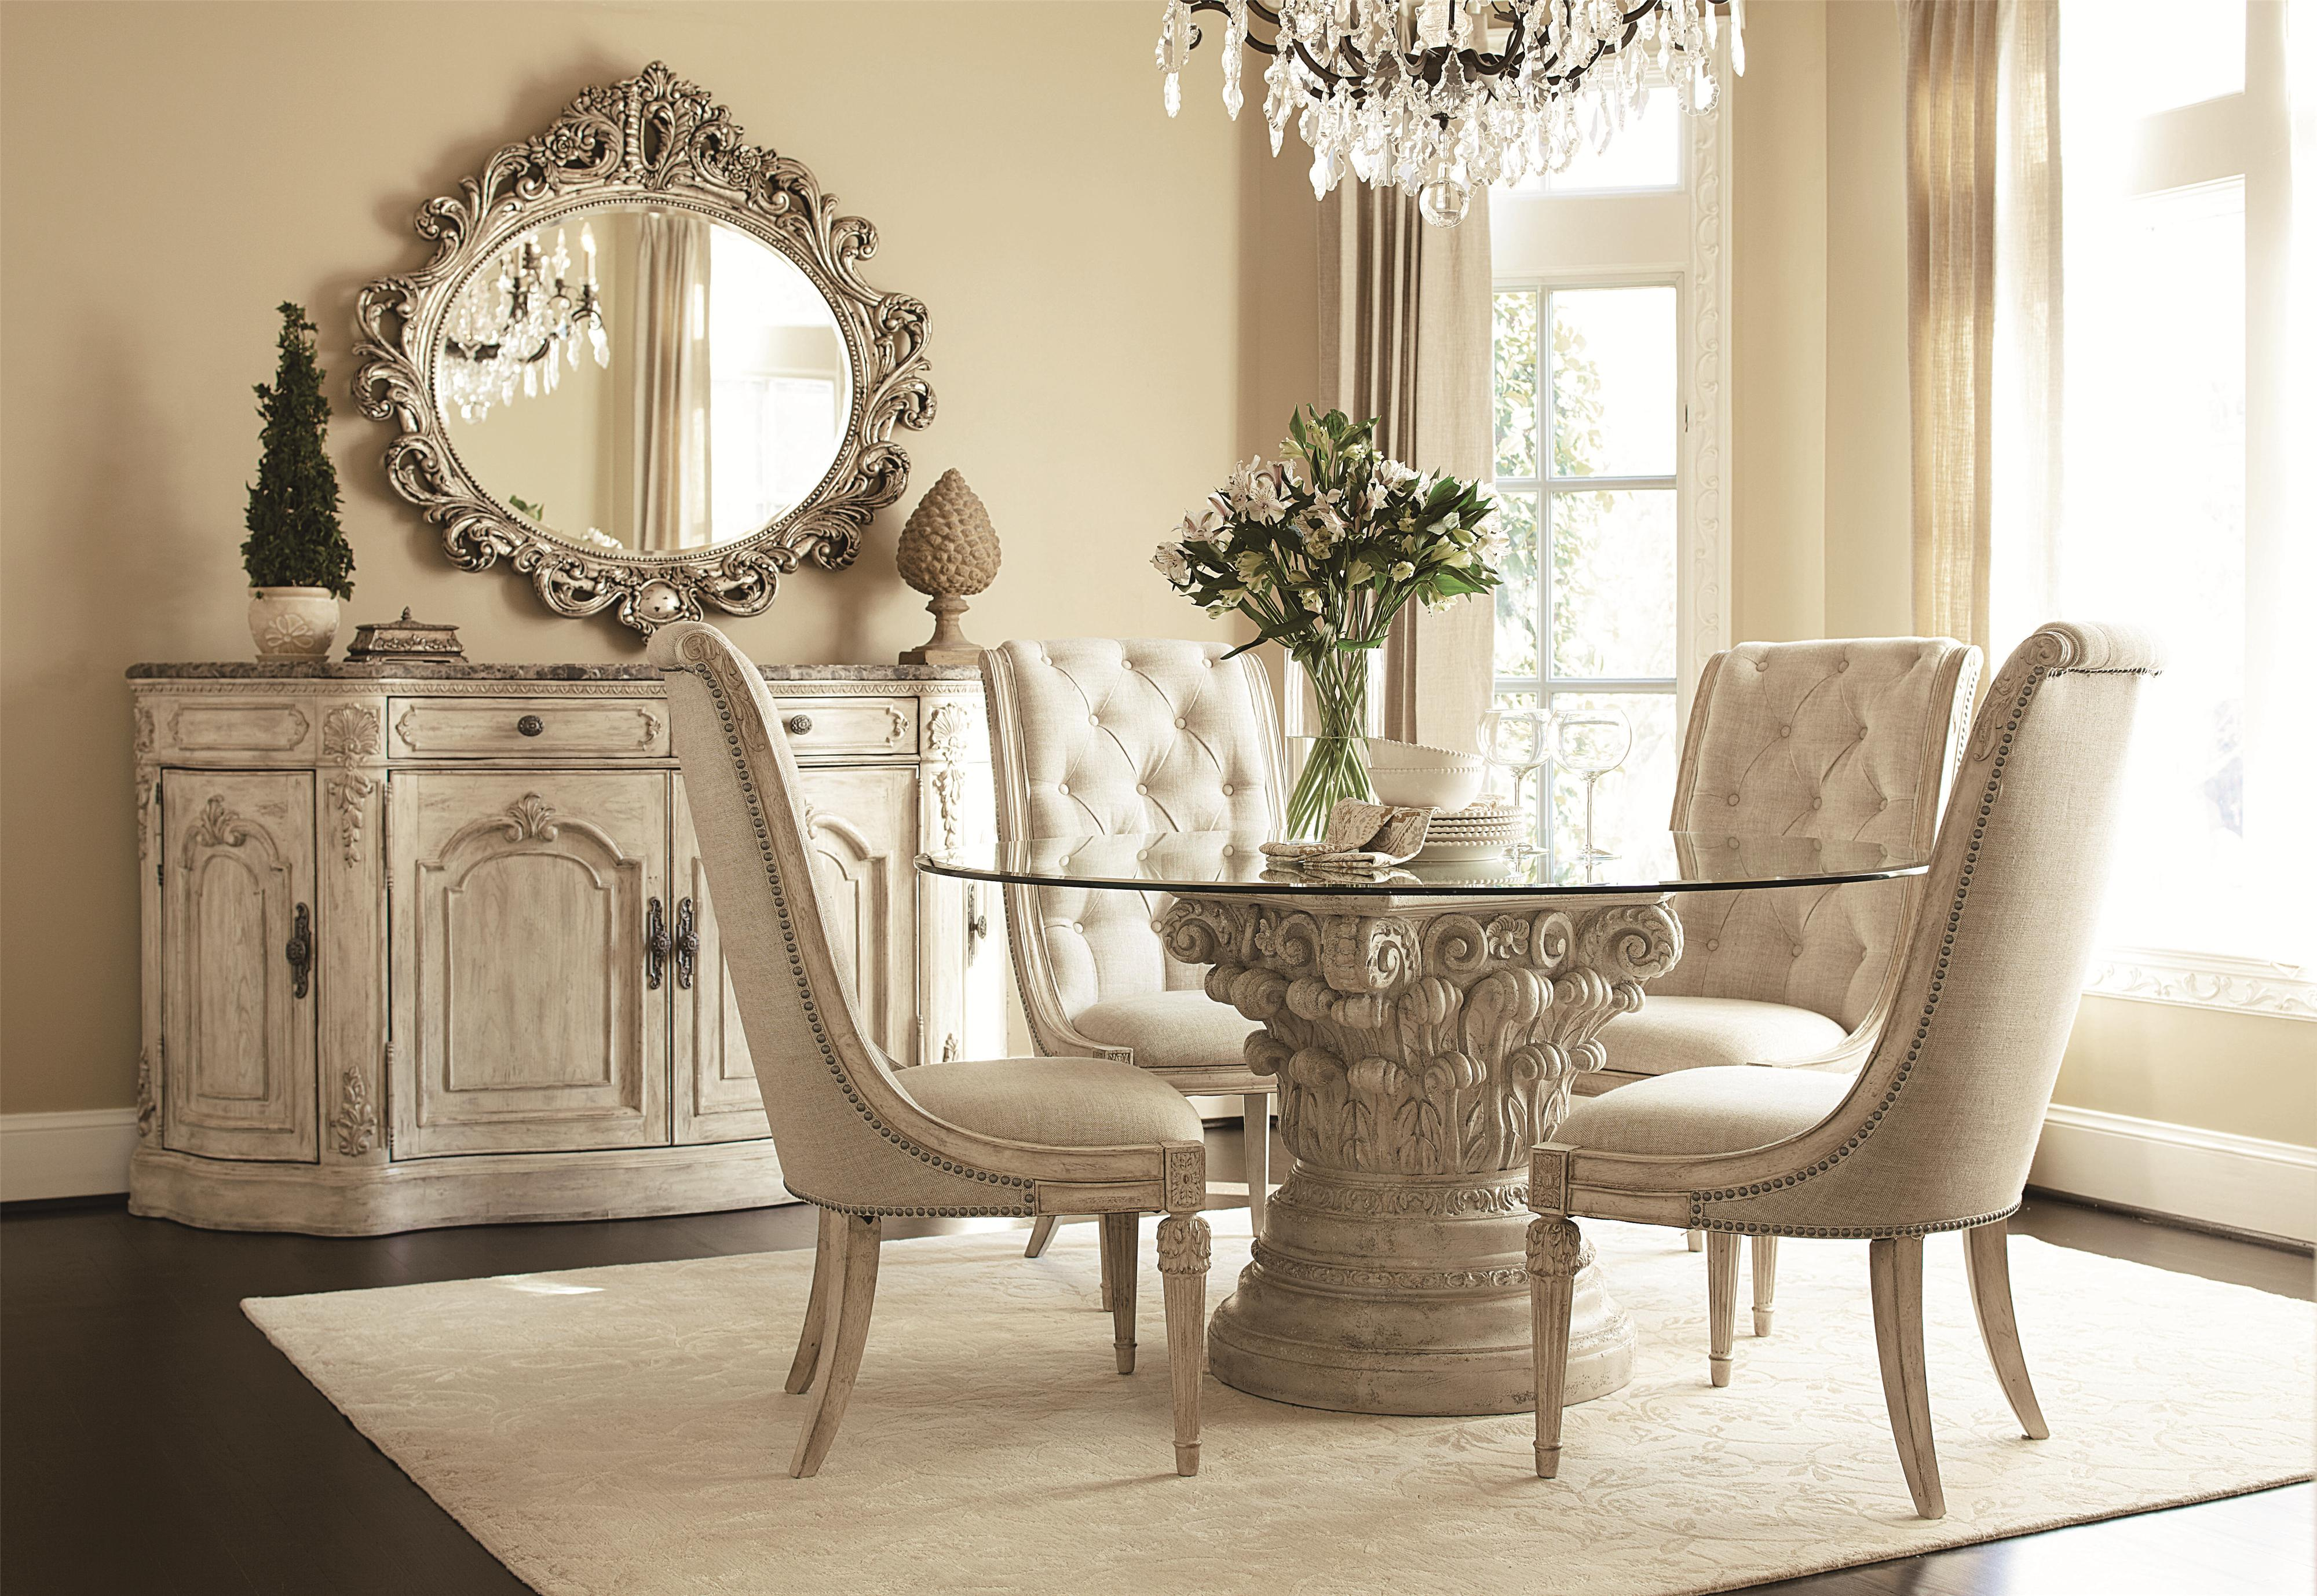 American Drew Jessica McClintock Home - The Boutique Collection Formal Dining Room Group - Item Number: 217W Dining Room Group 4